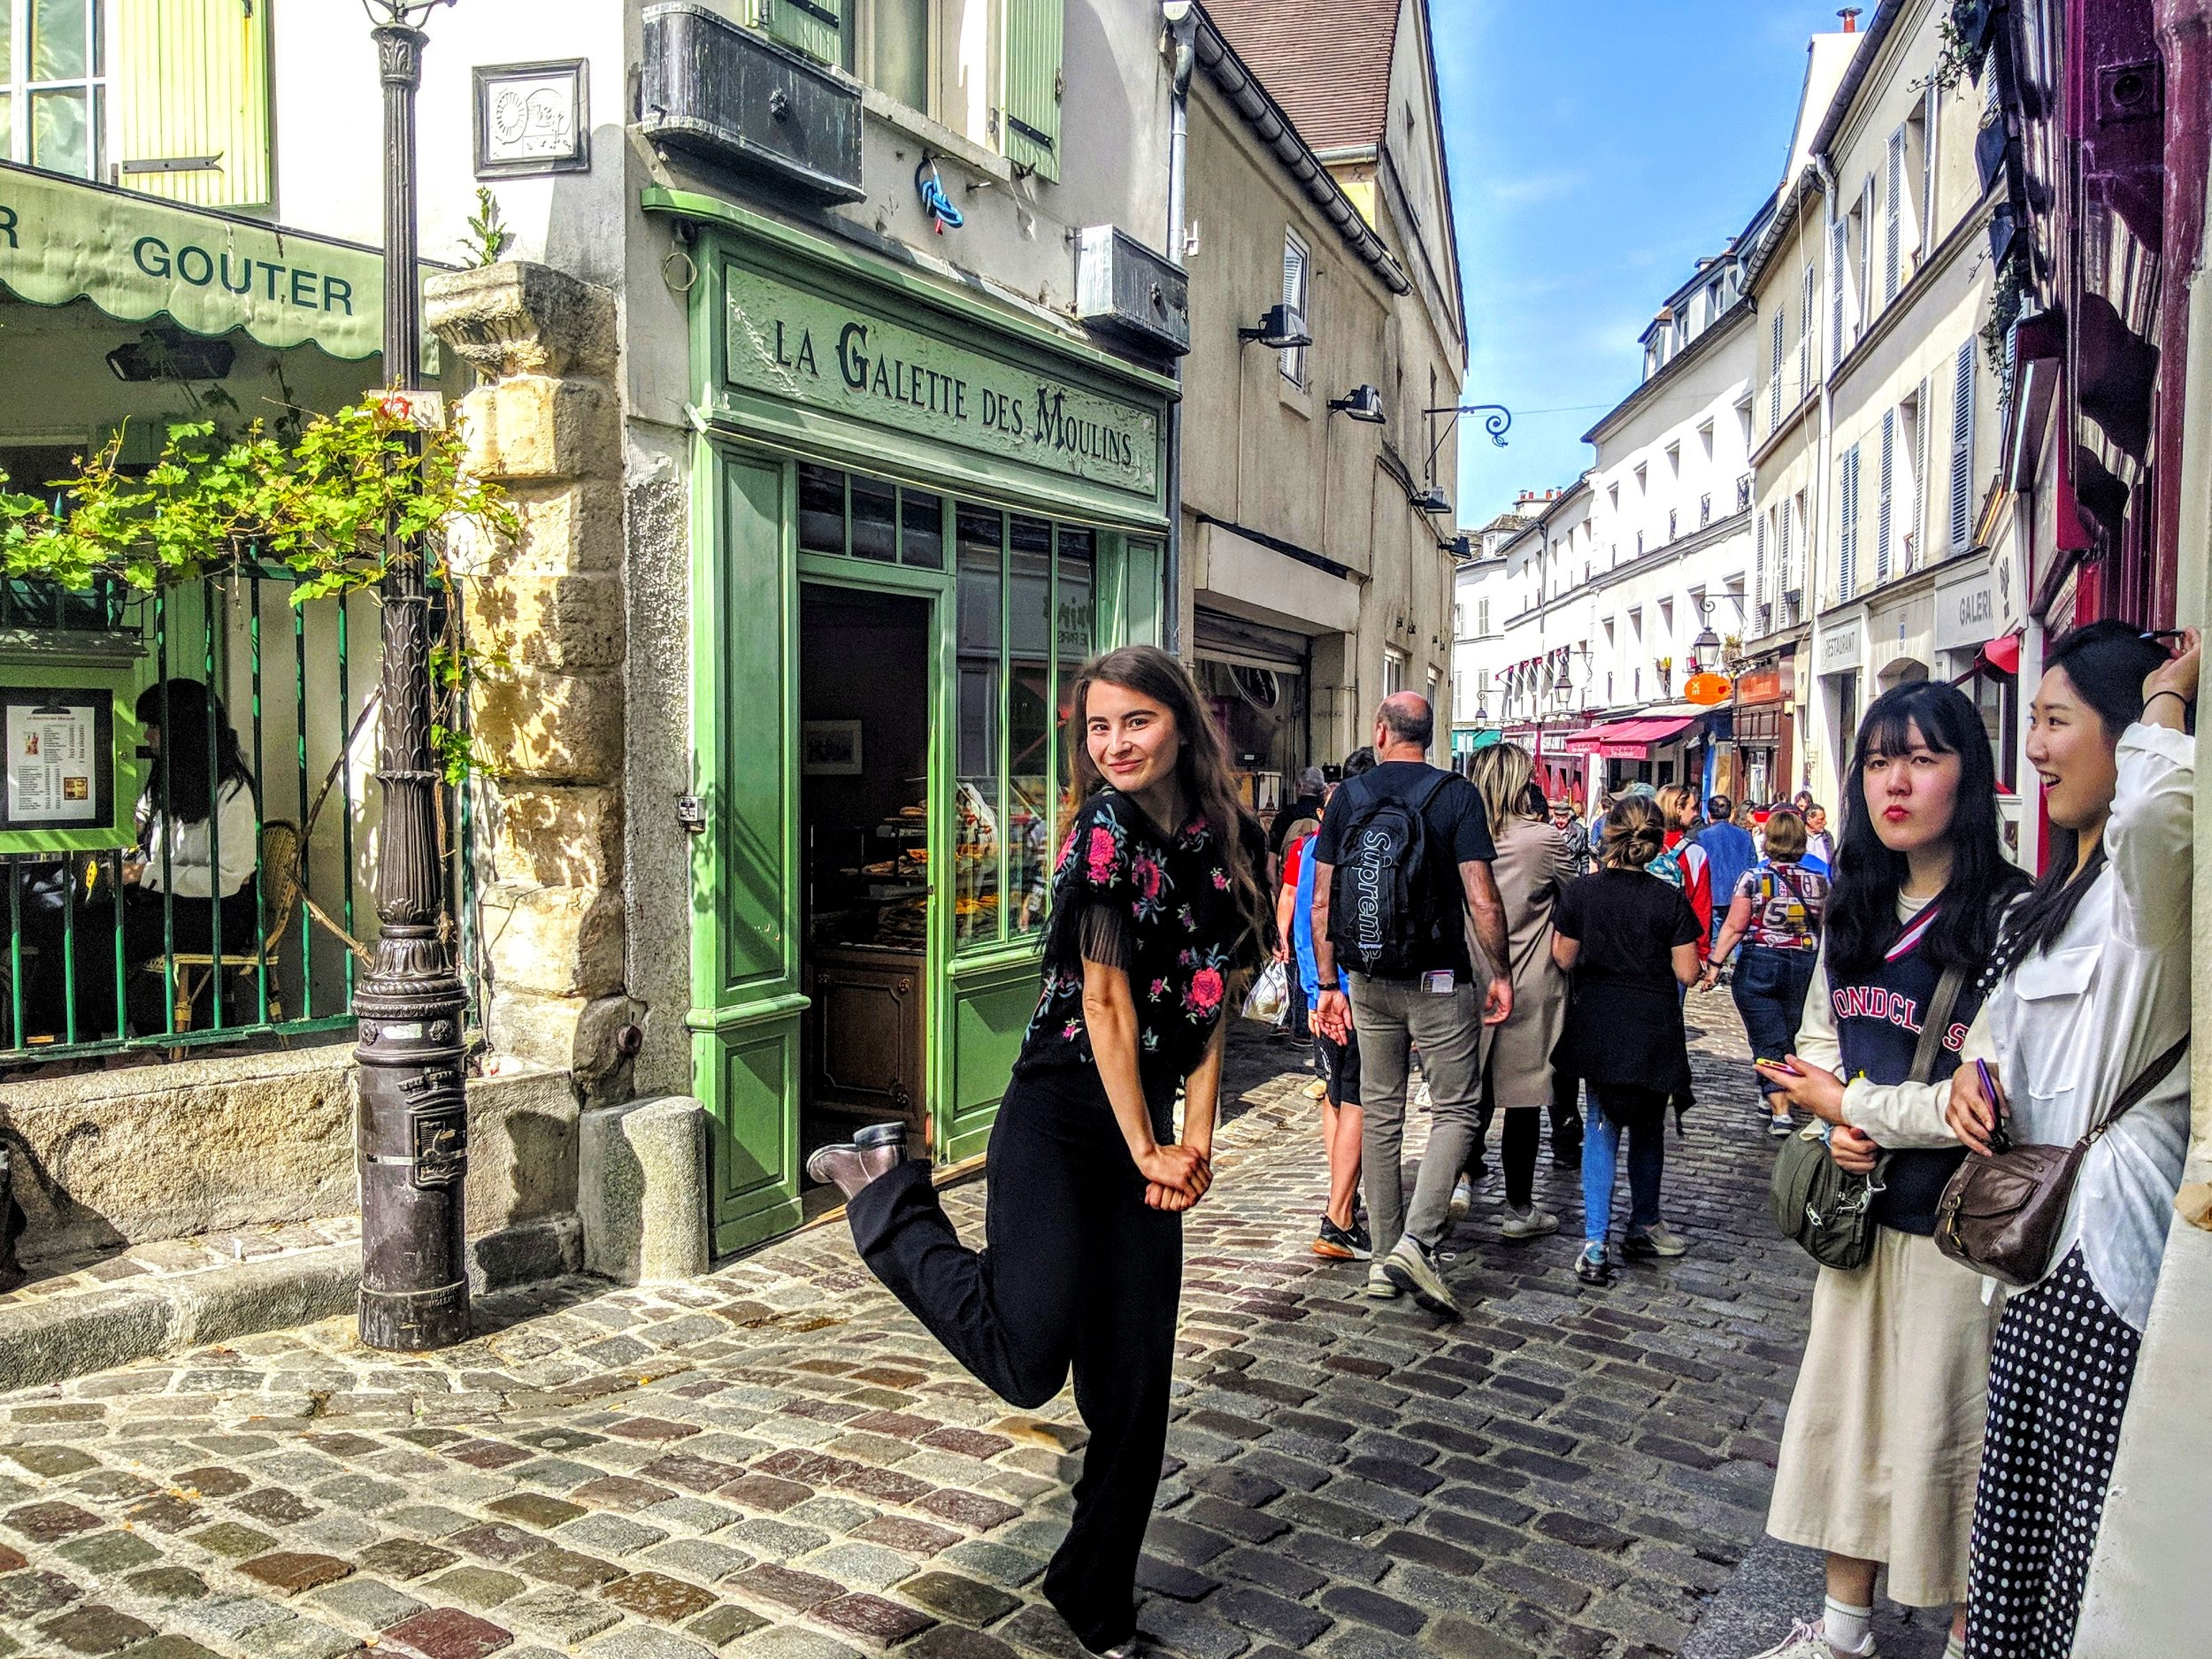 Streets of Monmartre